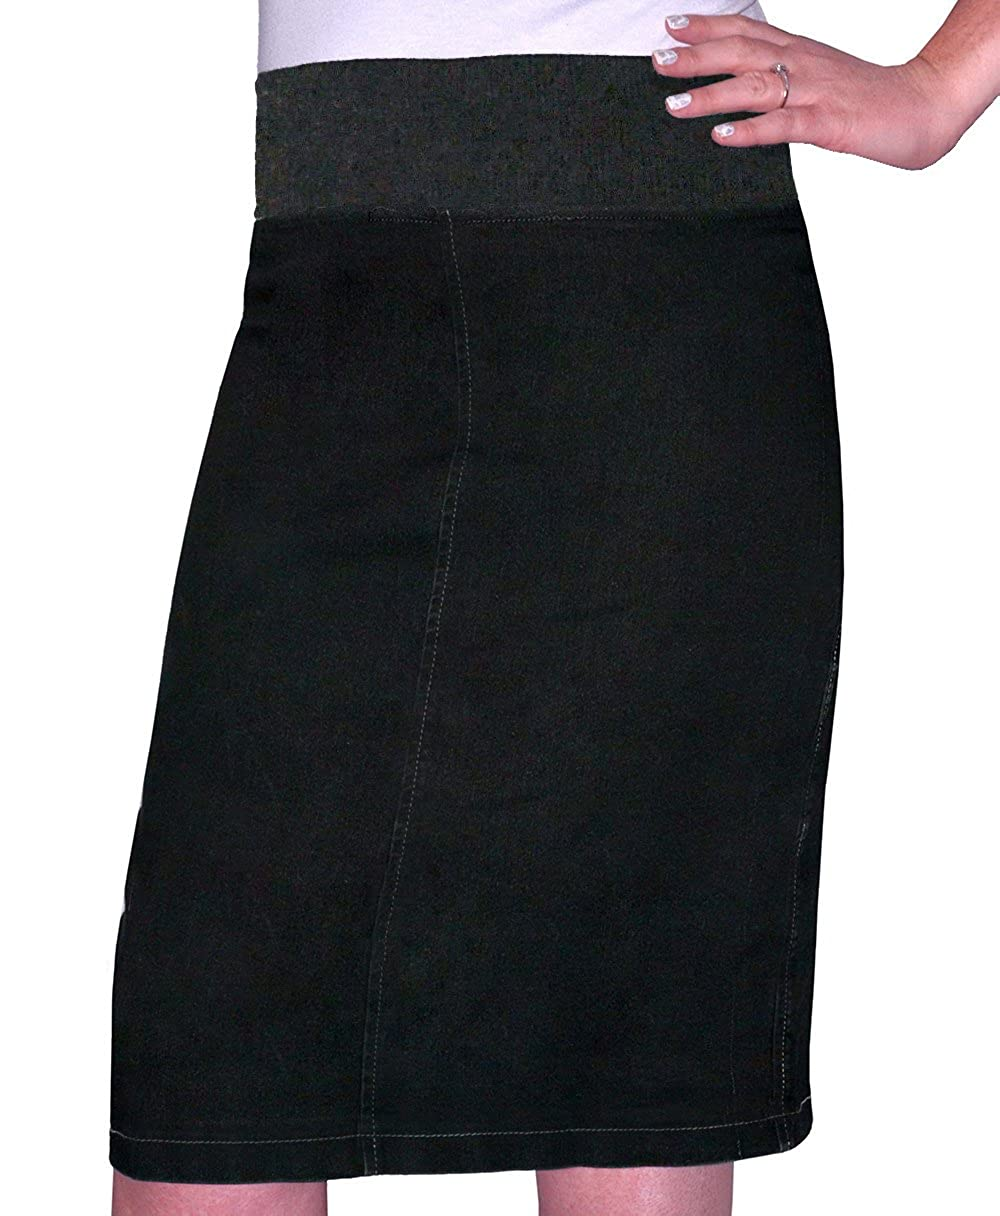 Kosher Casual Women's Modest Straight Knee Length Denim Skirt 1490N-AS-SBL-$P